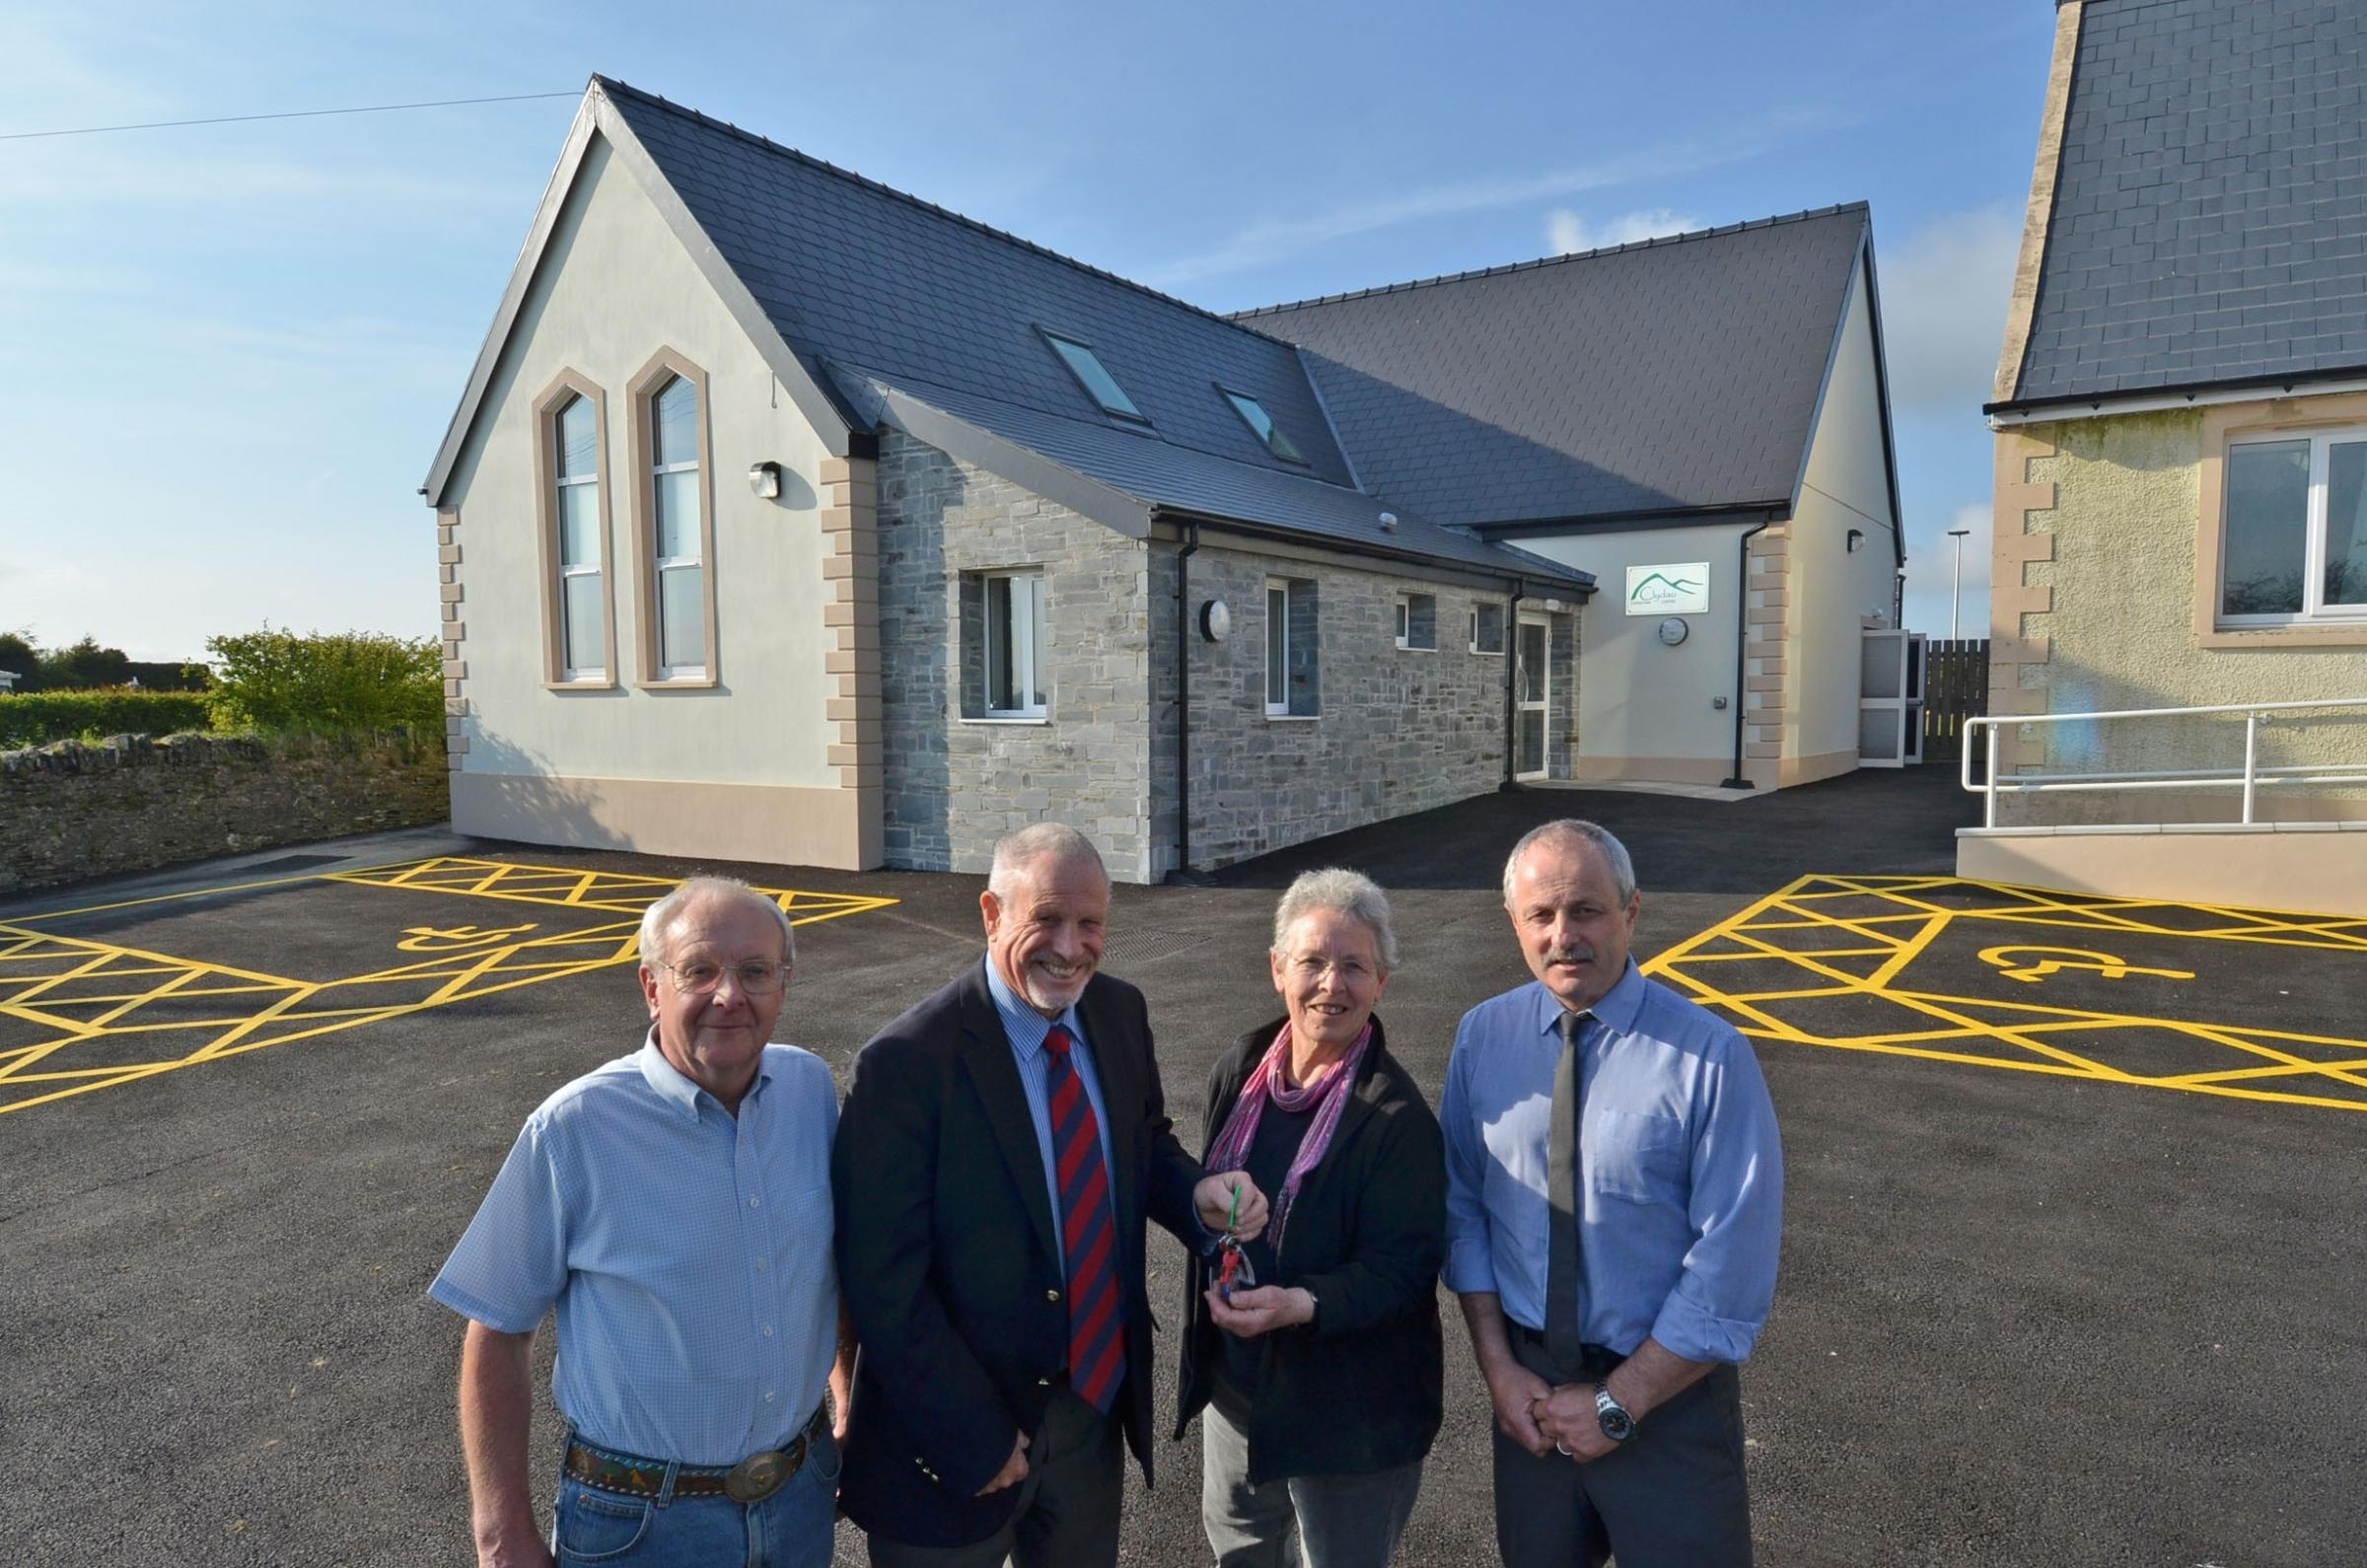 Pictured at the opening of the new Canolfan Clydau in Tegryn are (left to right) committee member Mike Vigars, Councillor David Pugh, Annabel Stewart, committee member, and Rod Bowen, committee chairman.  (6278777)